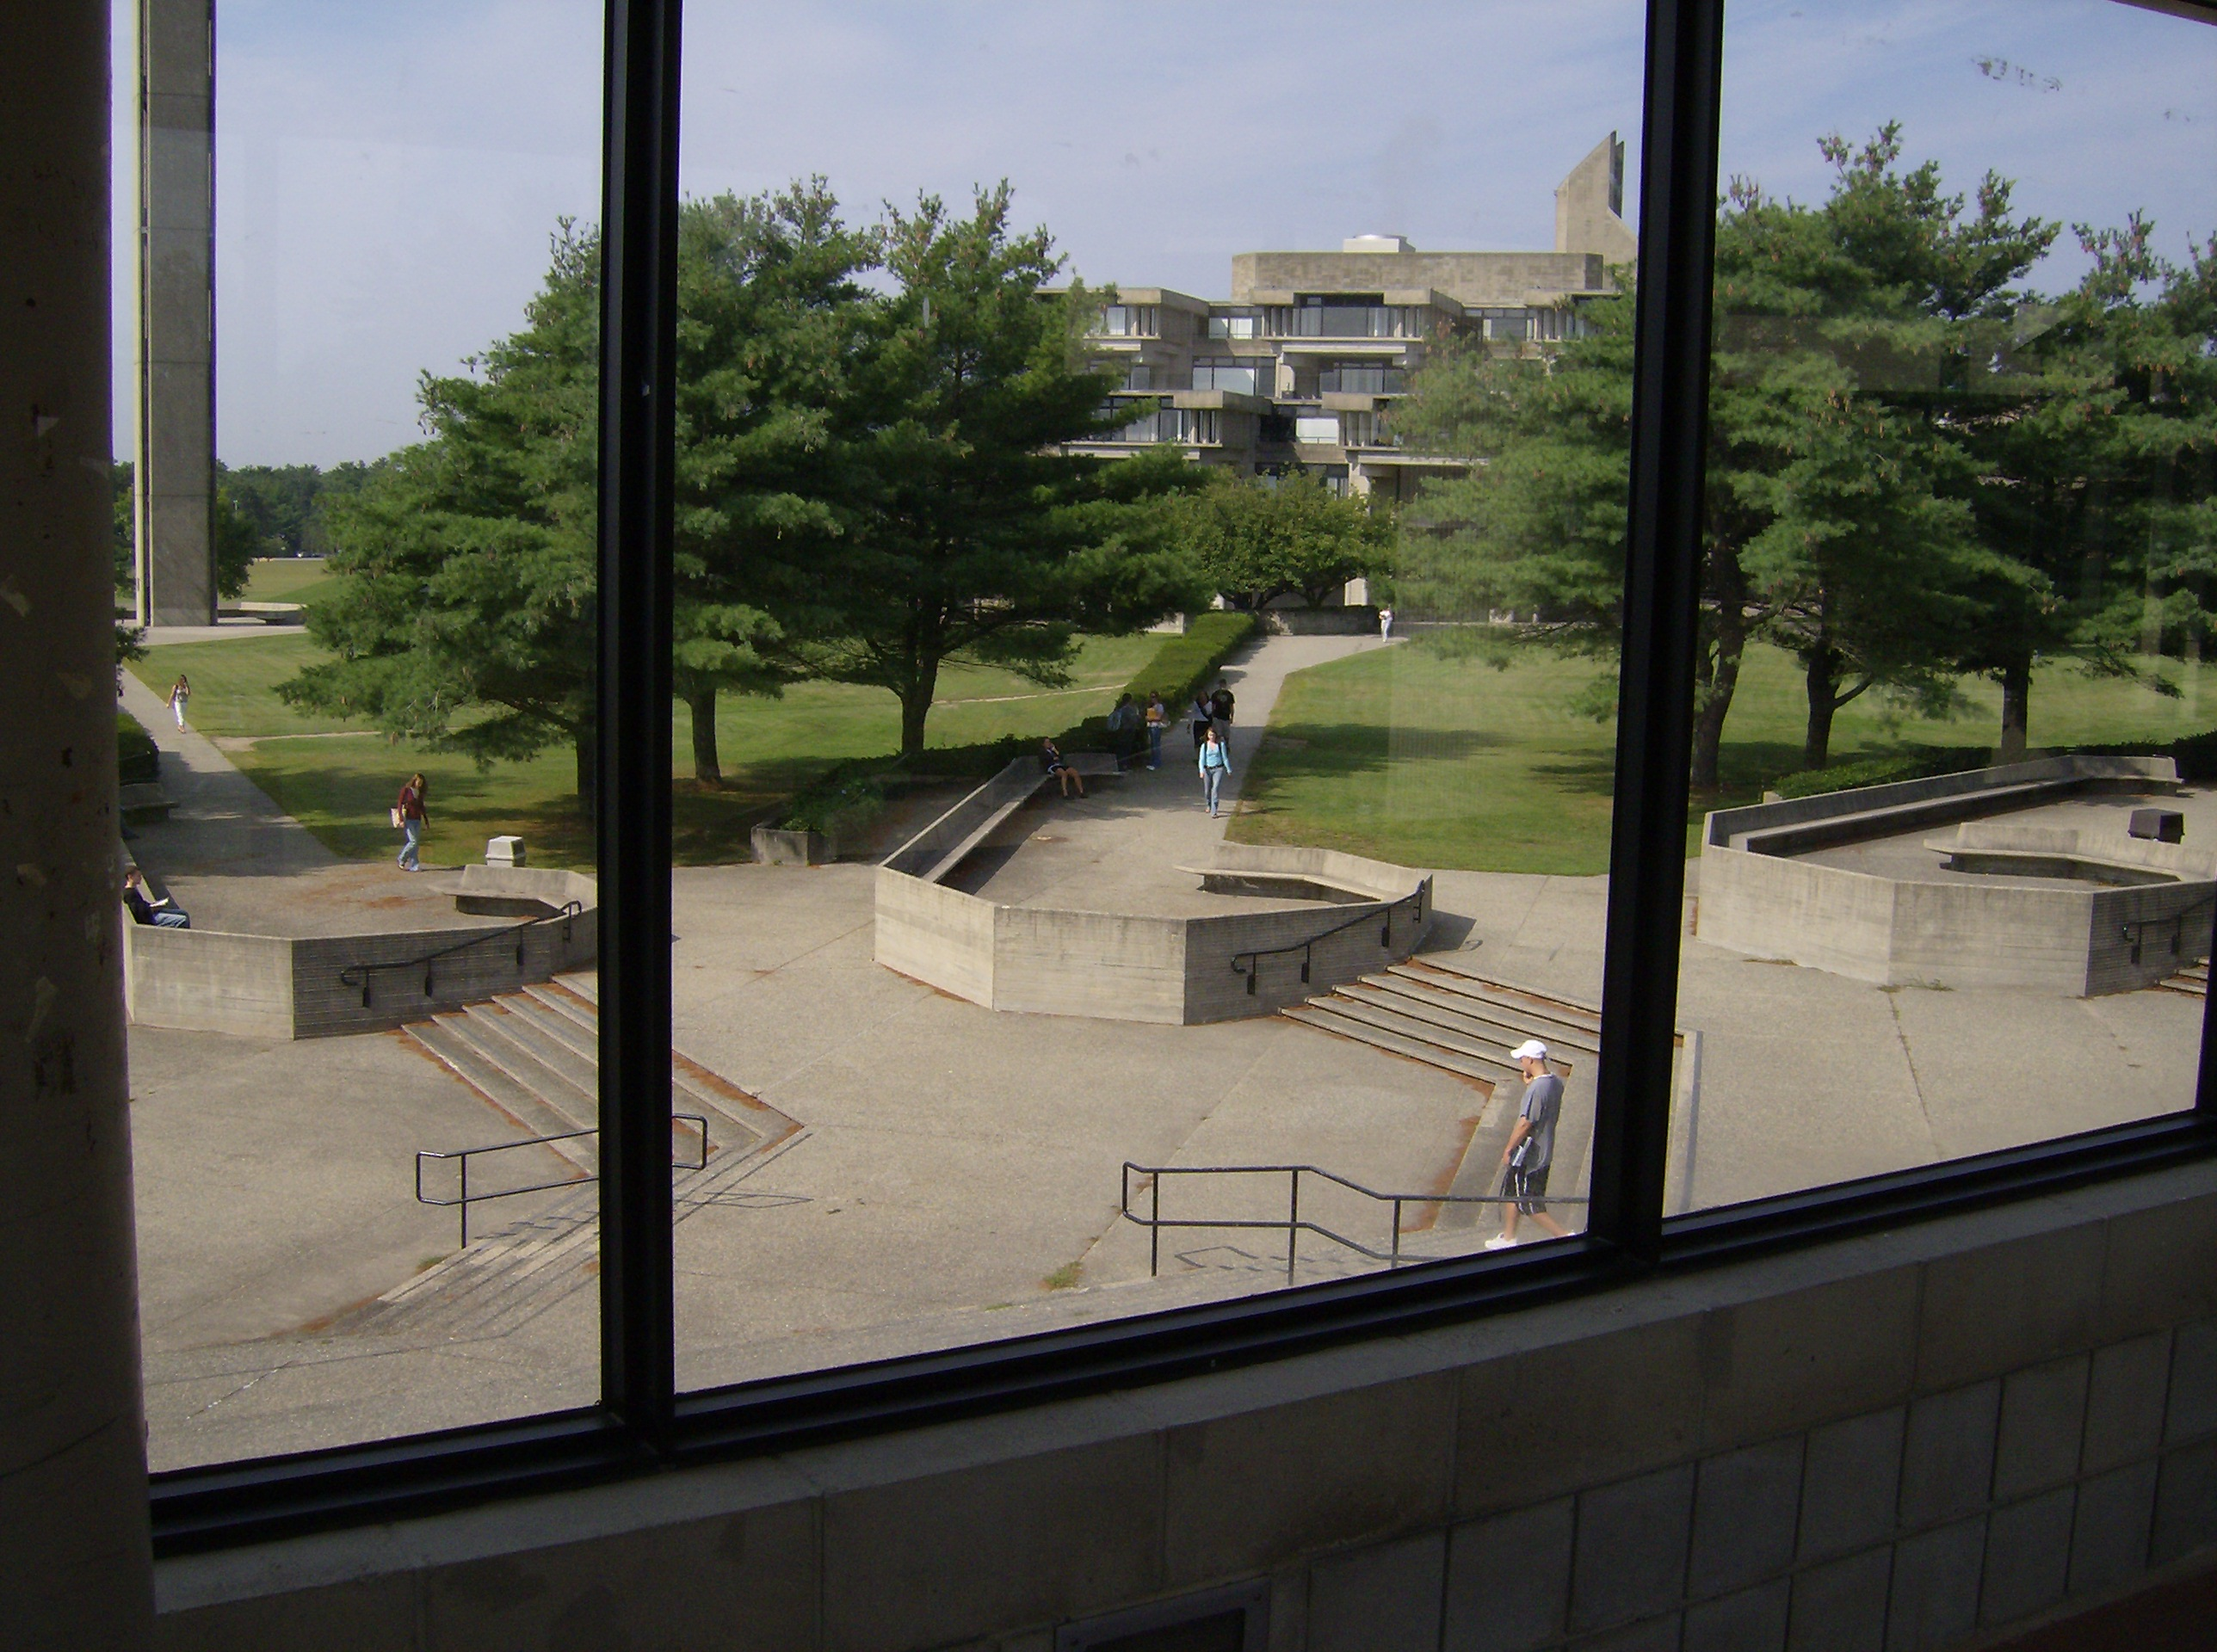 umass dartmouth pictures